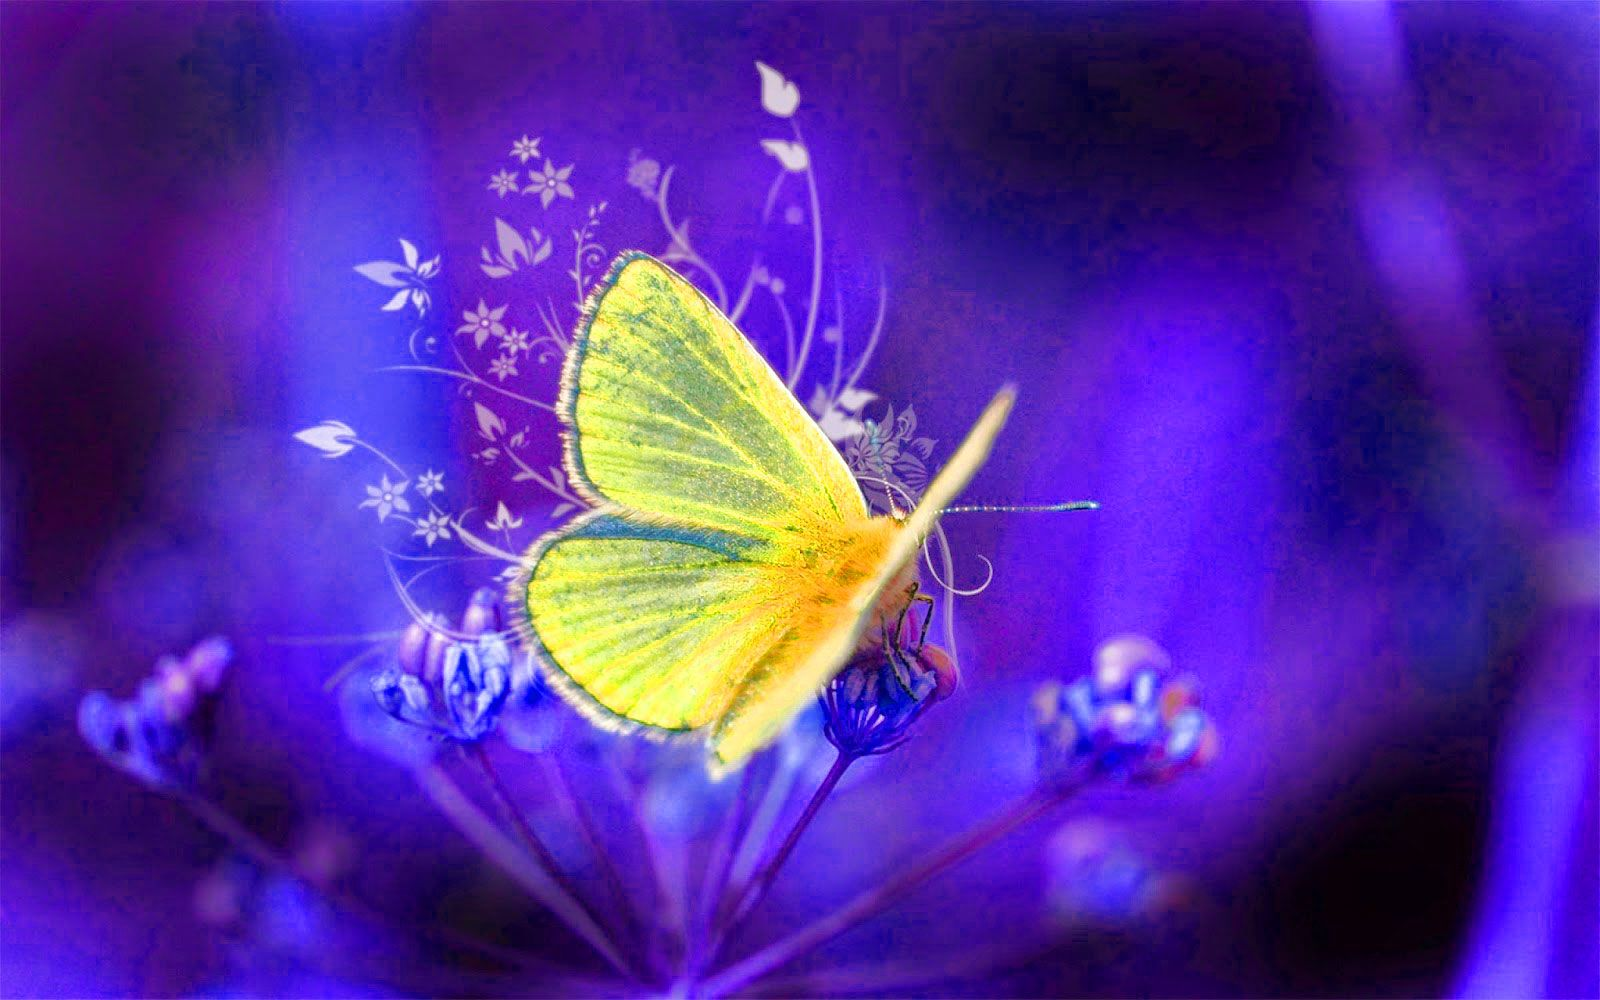 Butterfly Wtsp Dp Pics Butterfly Wtsp Dp Images Butterfly Wtsp Dp Photo Hd Download Dp Photos Whatsapp Dp Images Photo